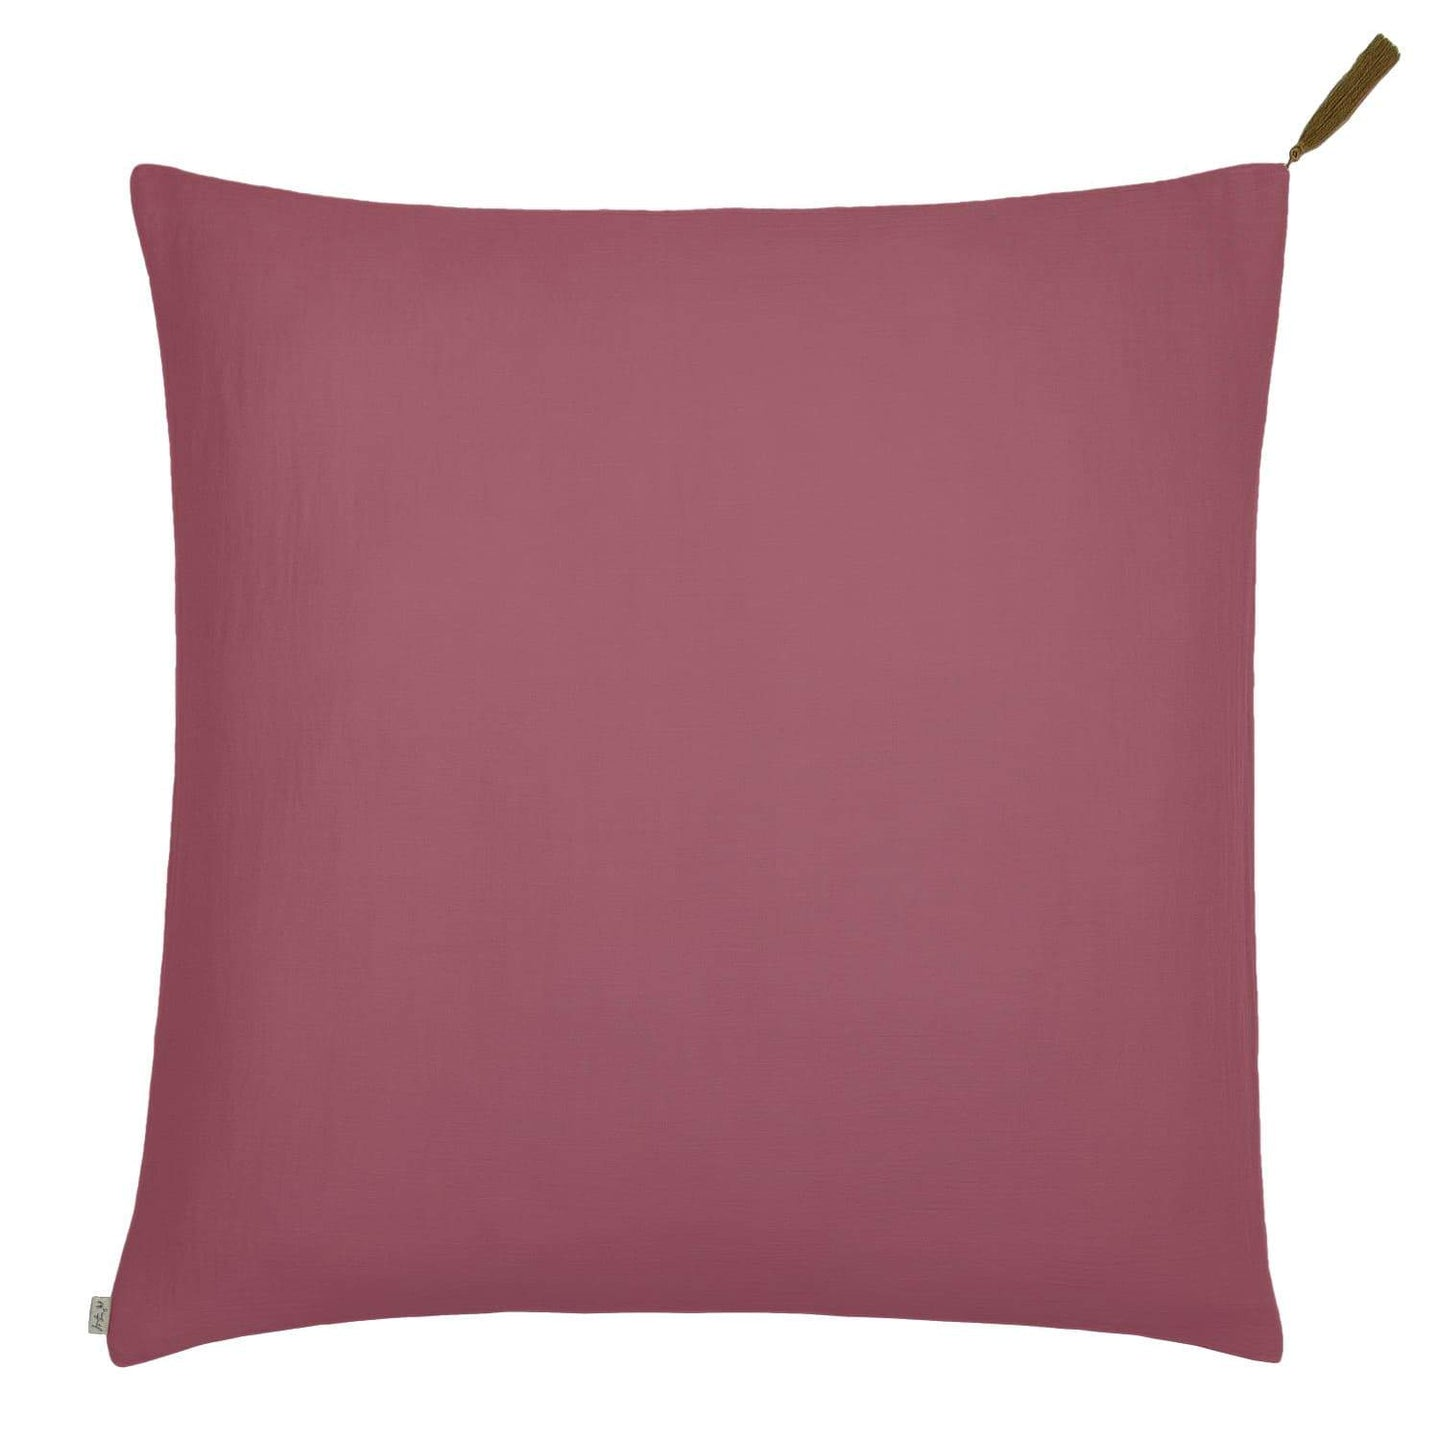 Pillow Case 65x65cm